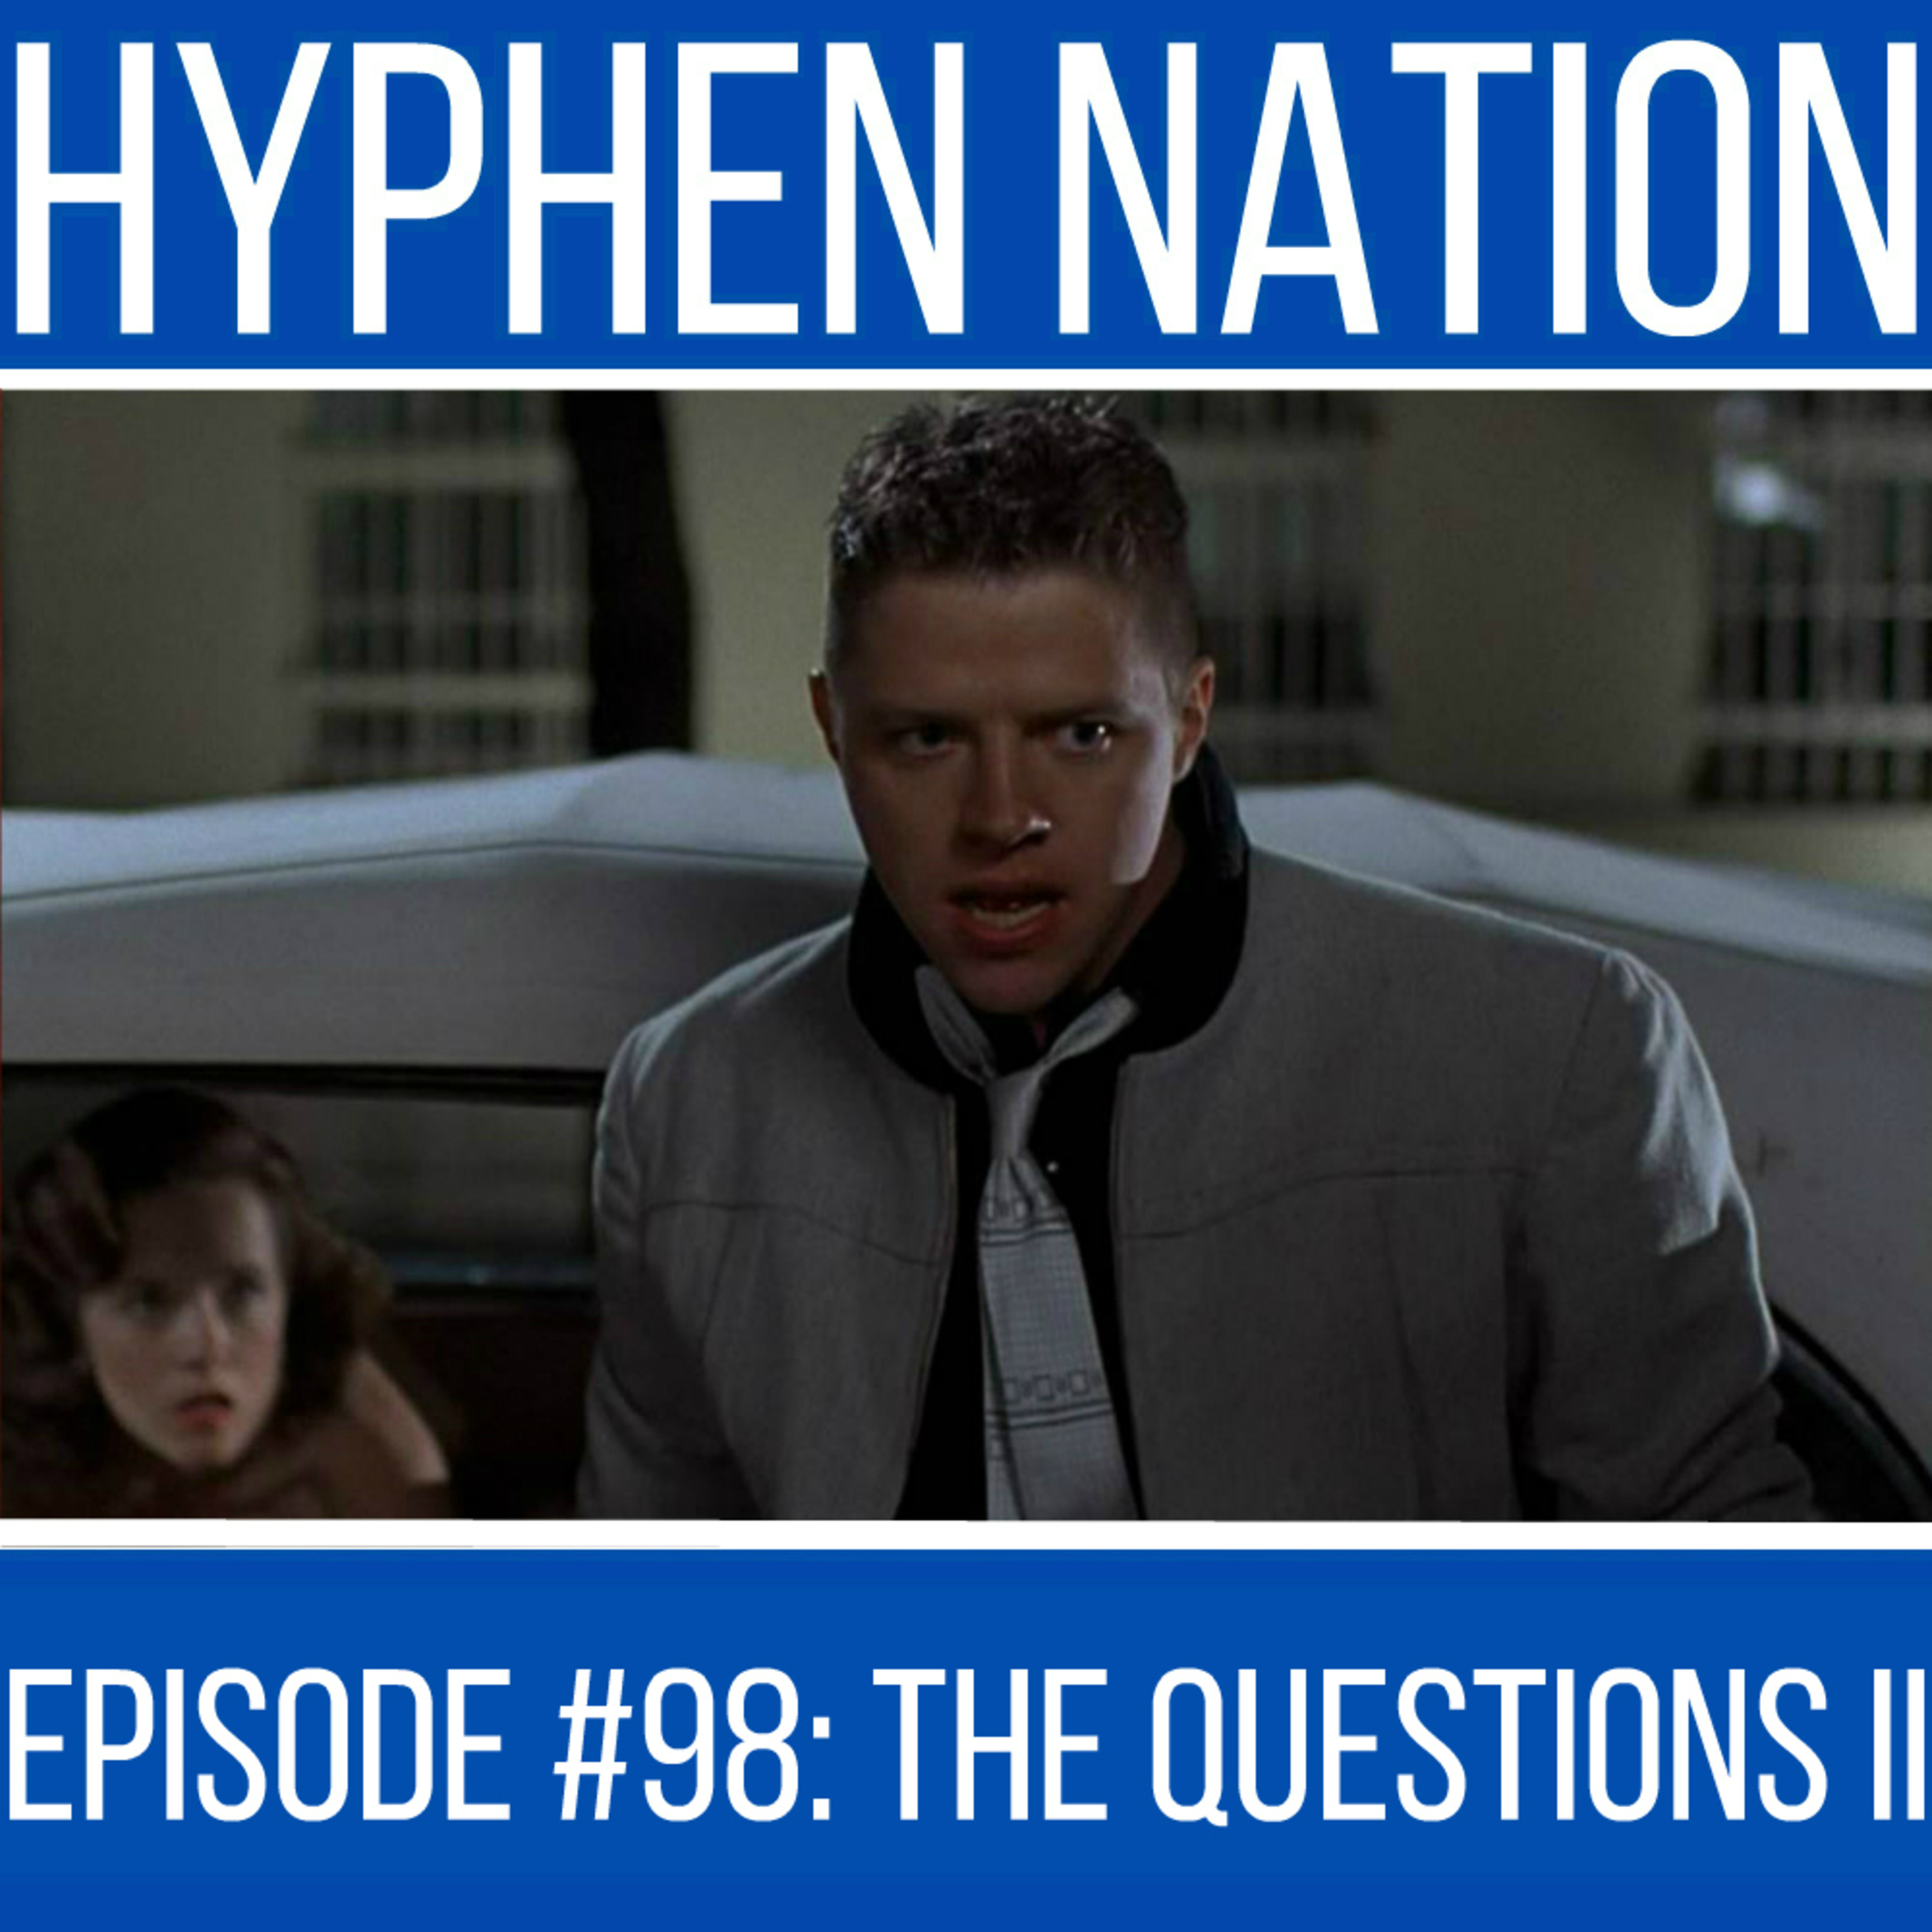 Episode #98: The Questions II